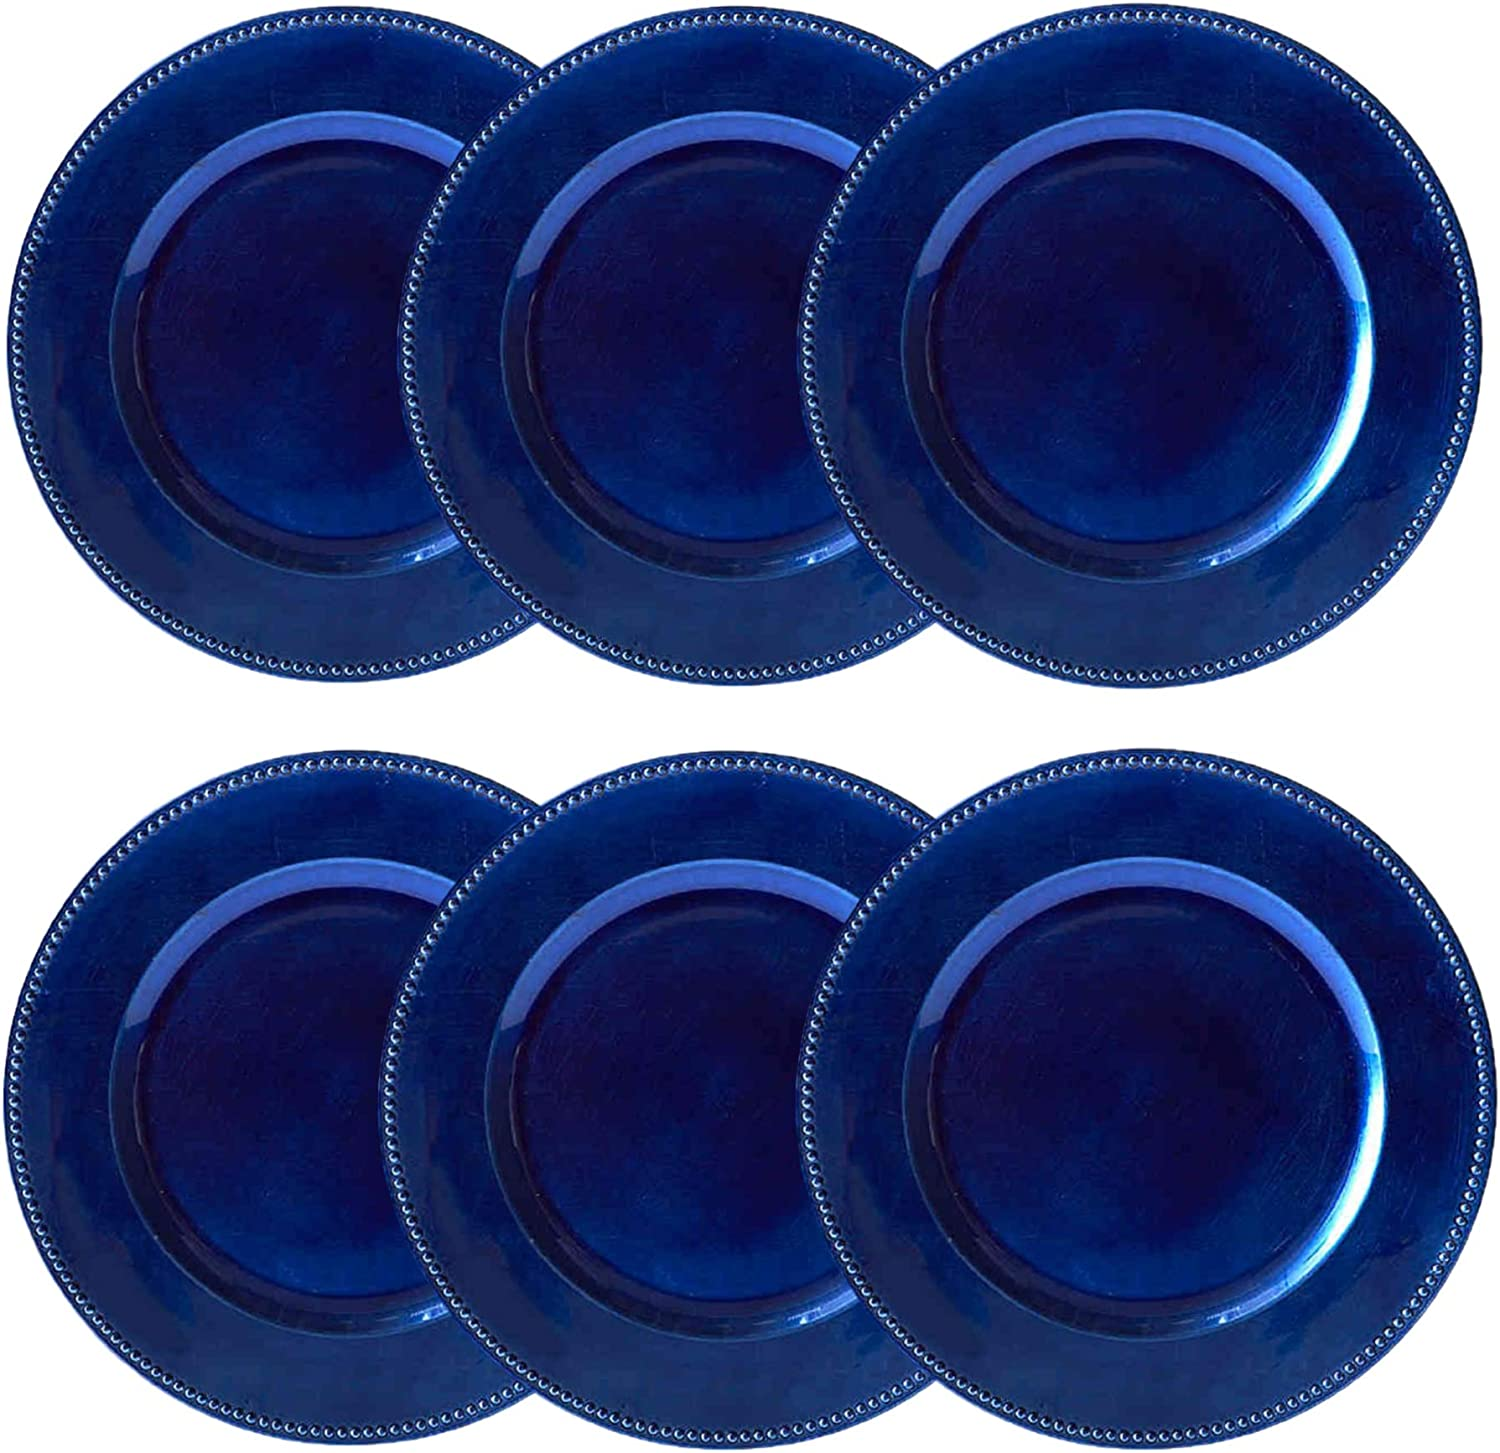 Round Beaded Decorative Charger Plates, 13 Inches Round, Set of 6, for Dining Table or Décor (Blue)